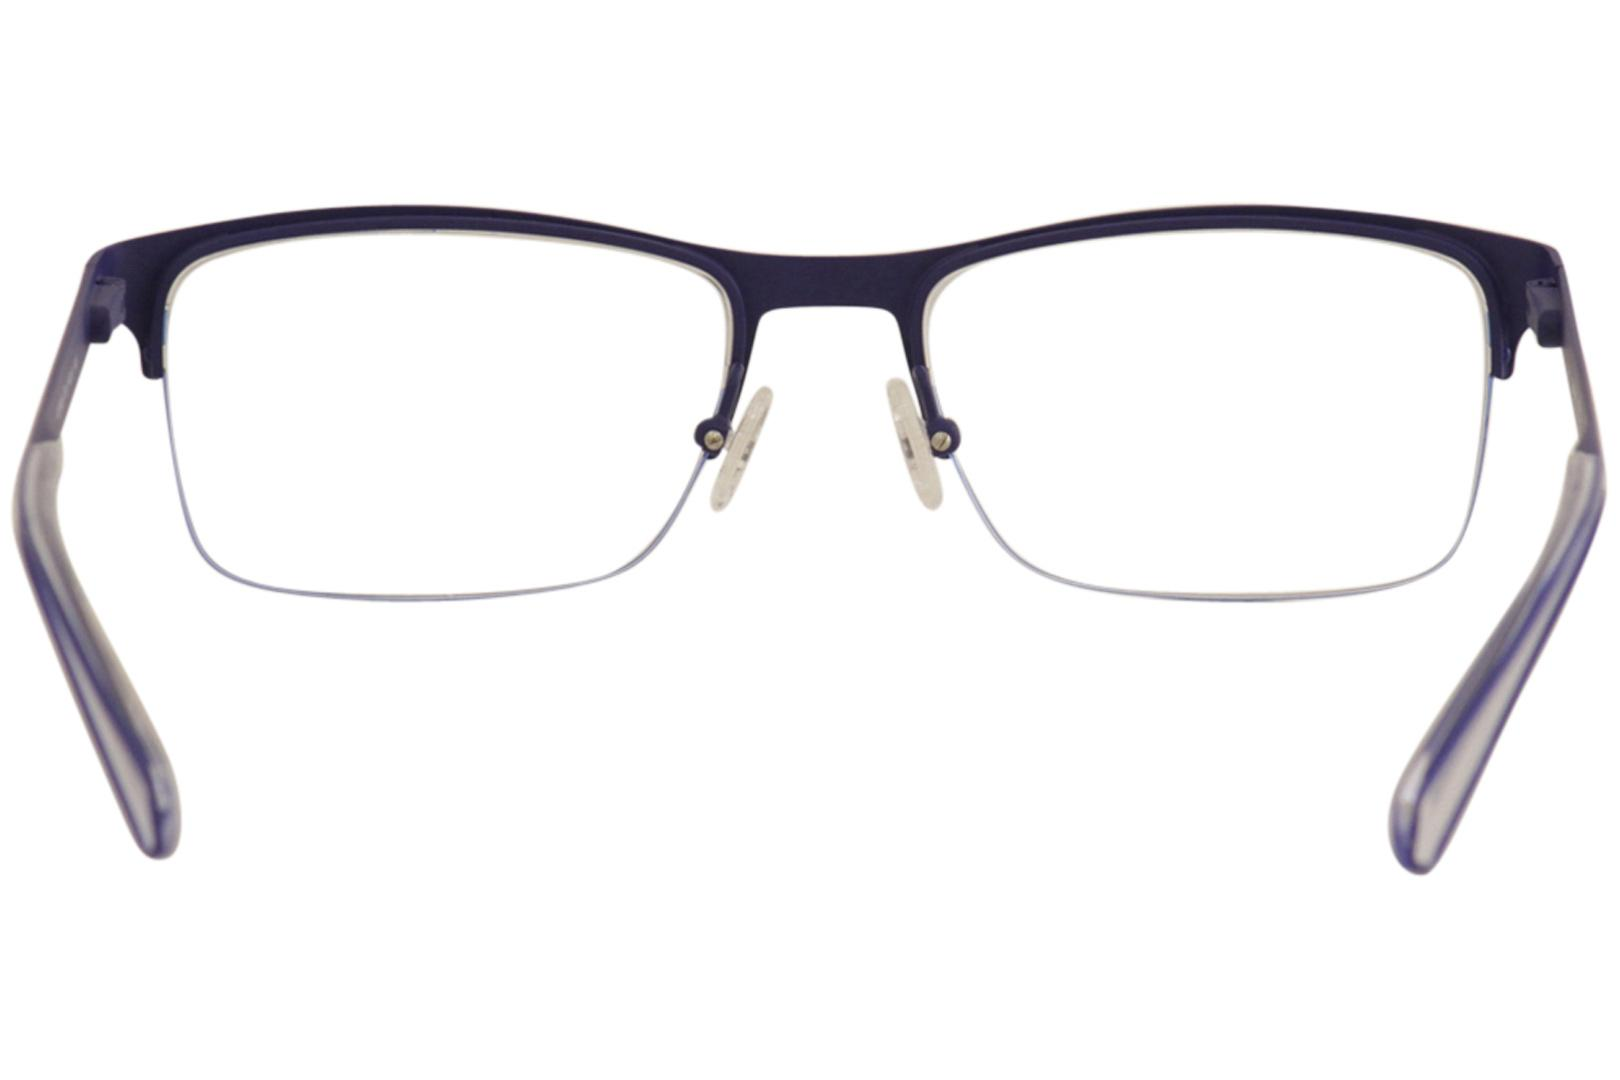 Eyeglasses Guess GU 1936 091 matte blue